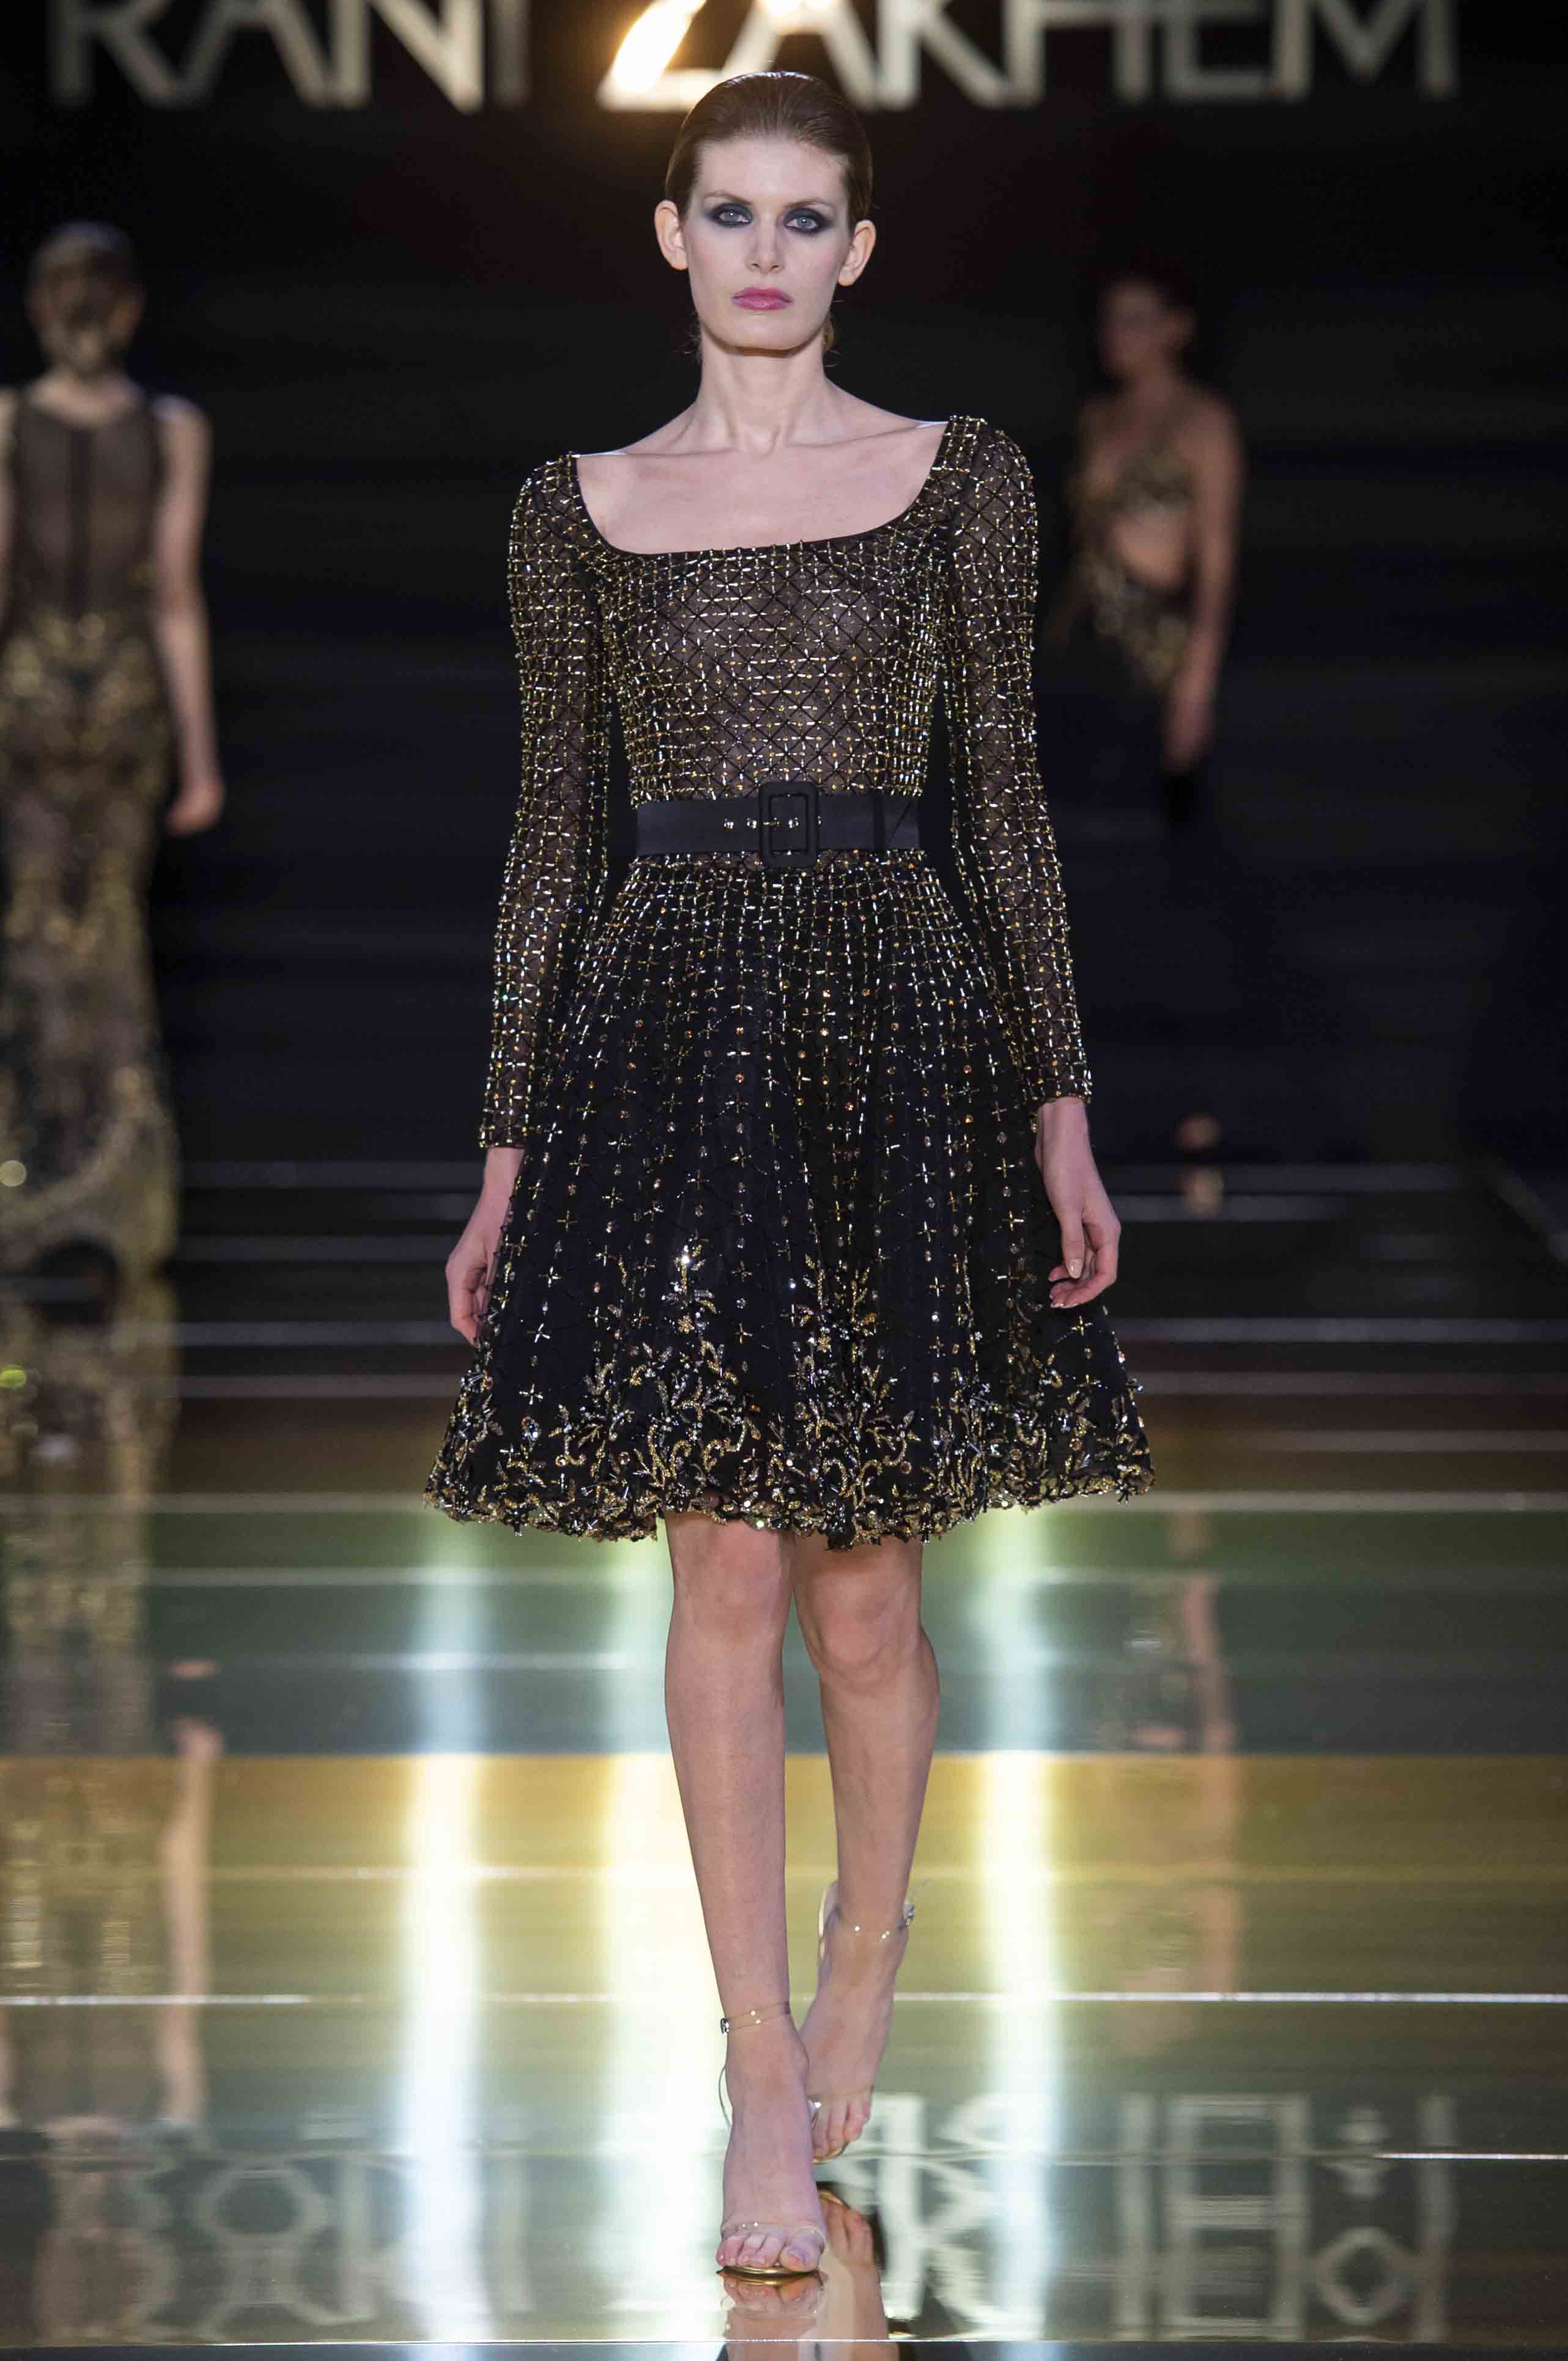 Rani zakhem couture collection automne hiver fall winter 2018 2019 pfw © imaxtree (20)